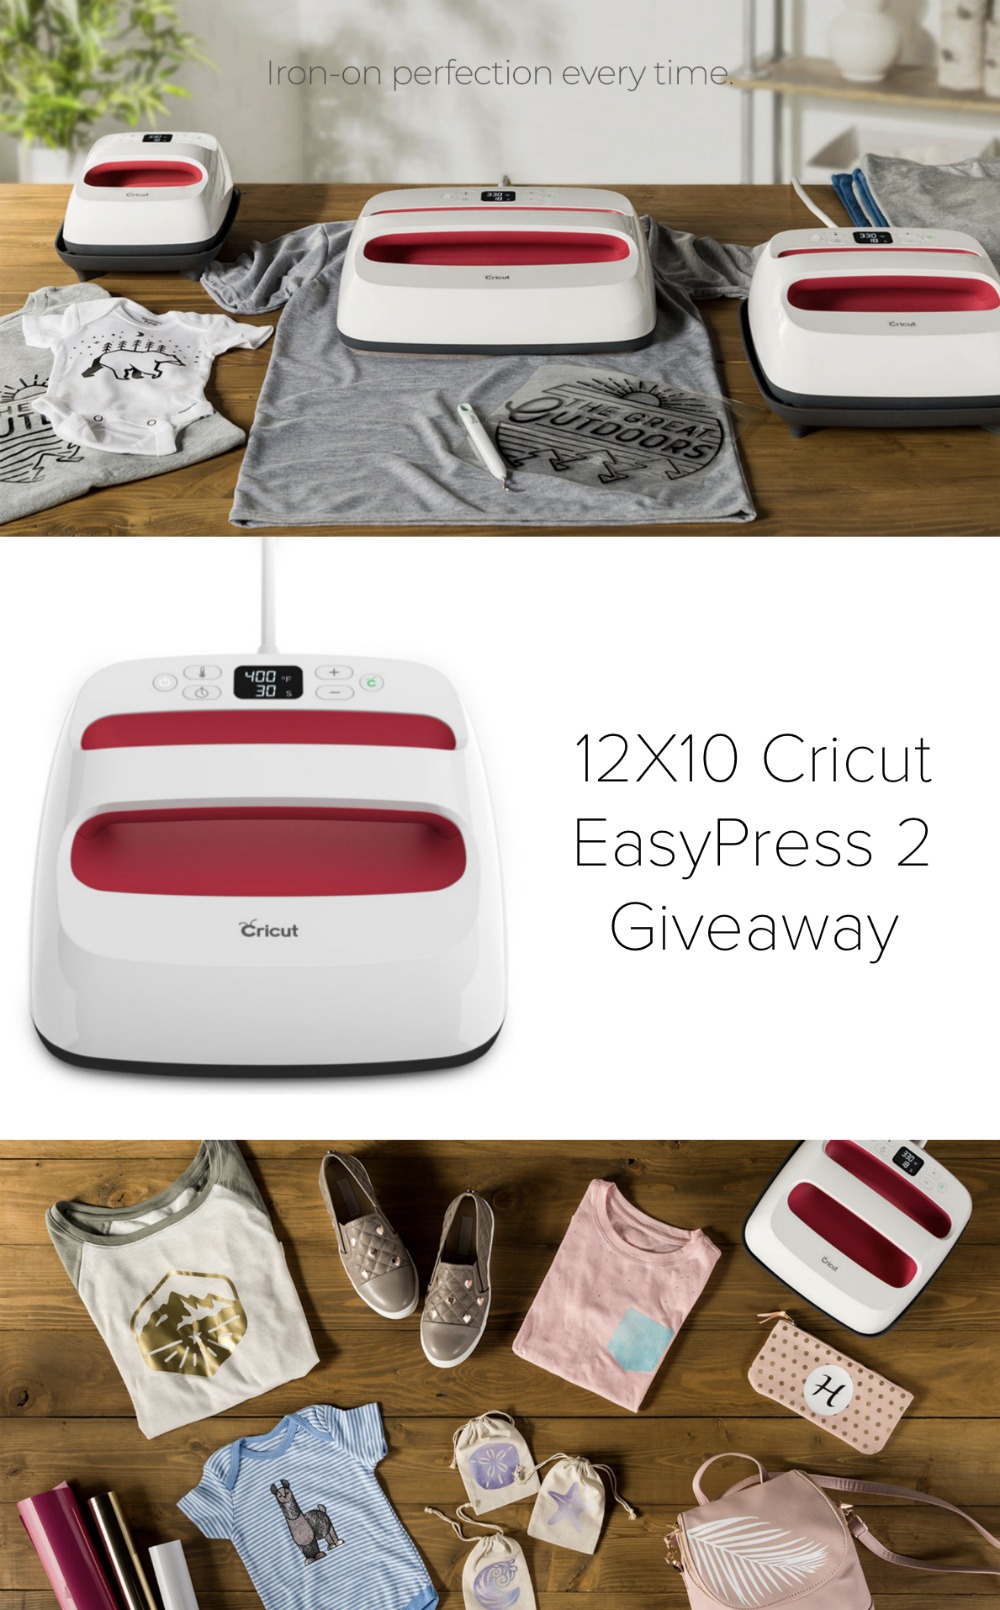 Win a 12X10 Cricut EasyPress 2 from Hello Creative Family. Must live in Canada or the US to enter. Contest closes November 20th, 2018. #Giveaway #Cricut #CricutMade #contest